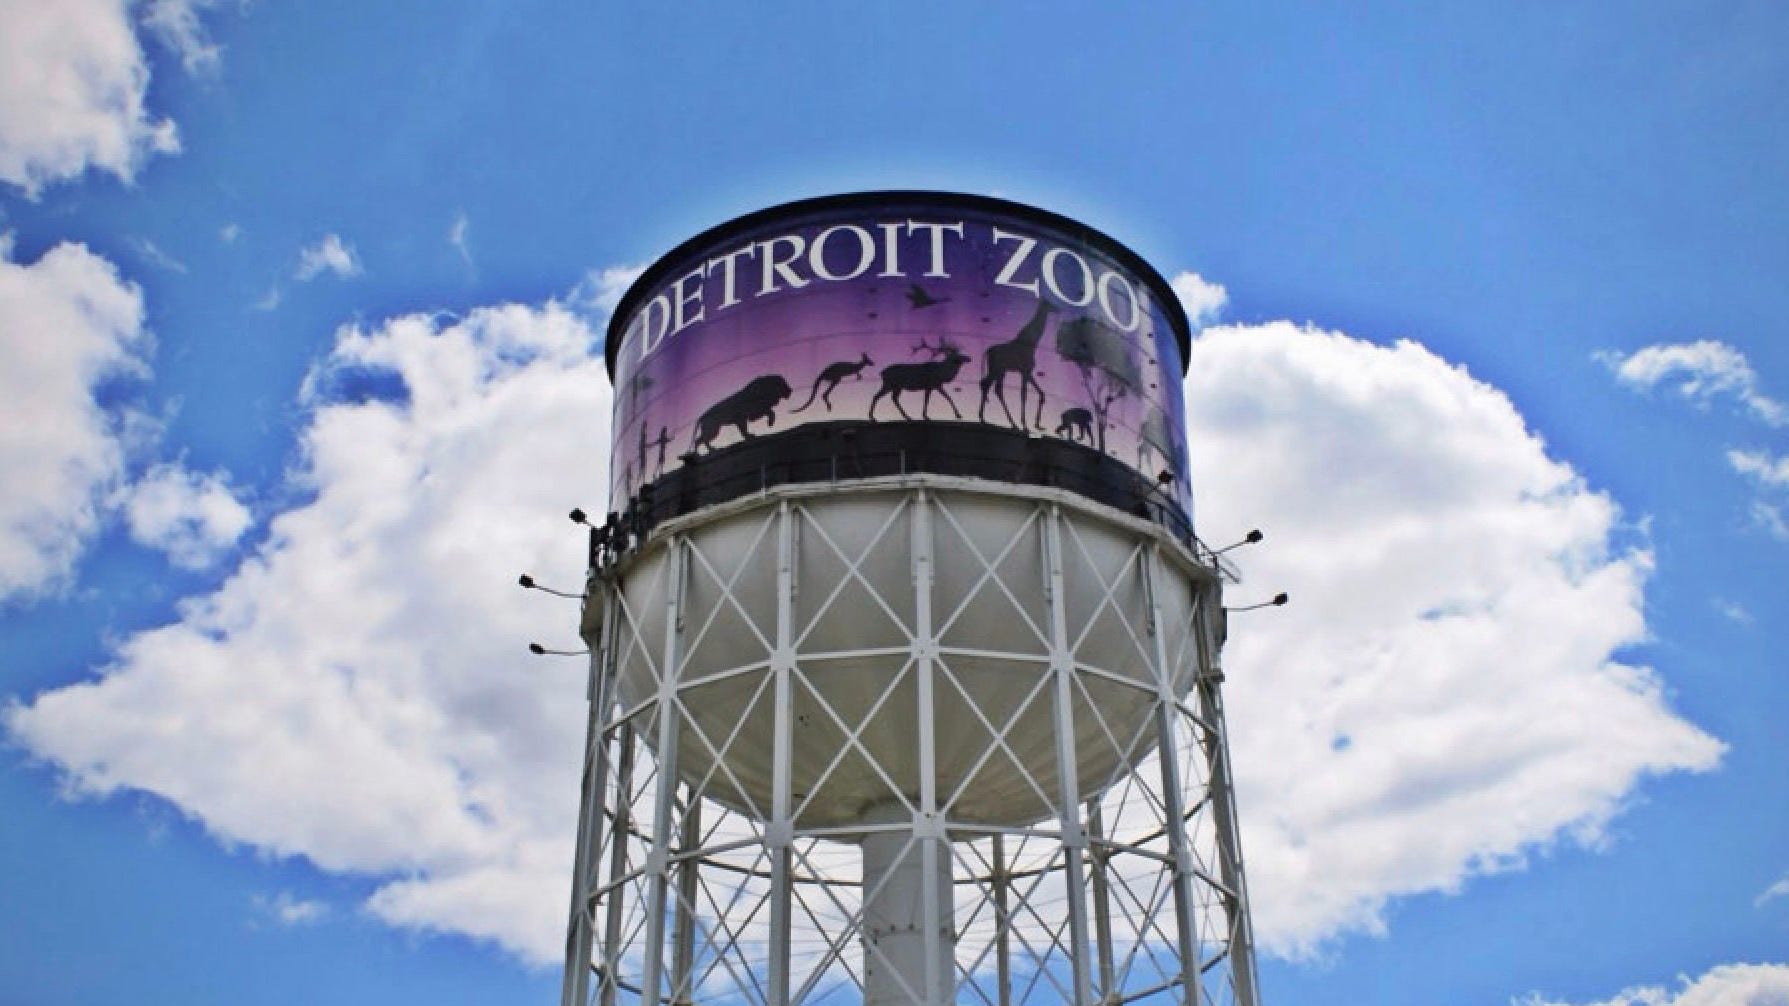 Detroit Zoo To Open Monday Only To Members With Reservations